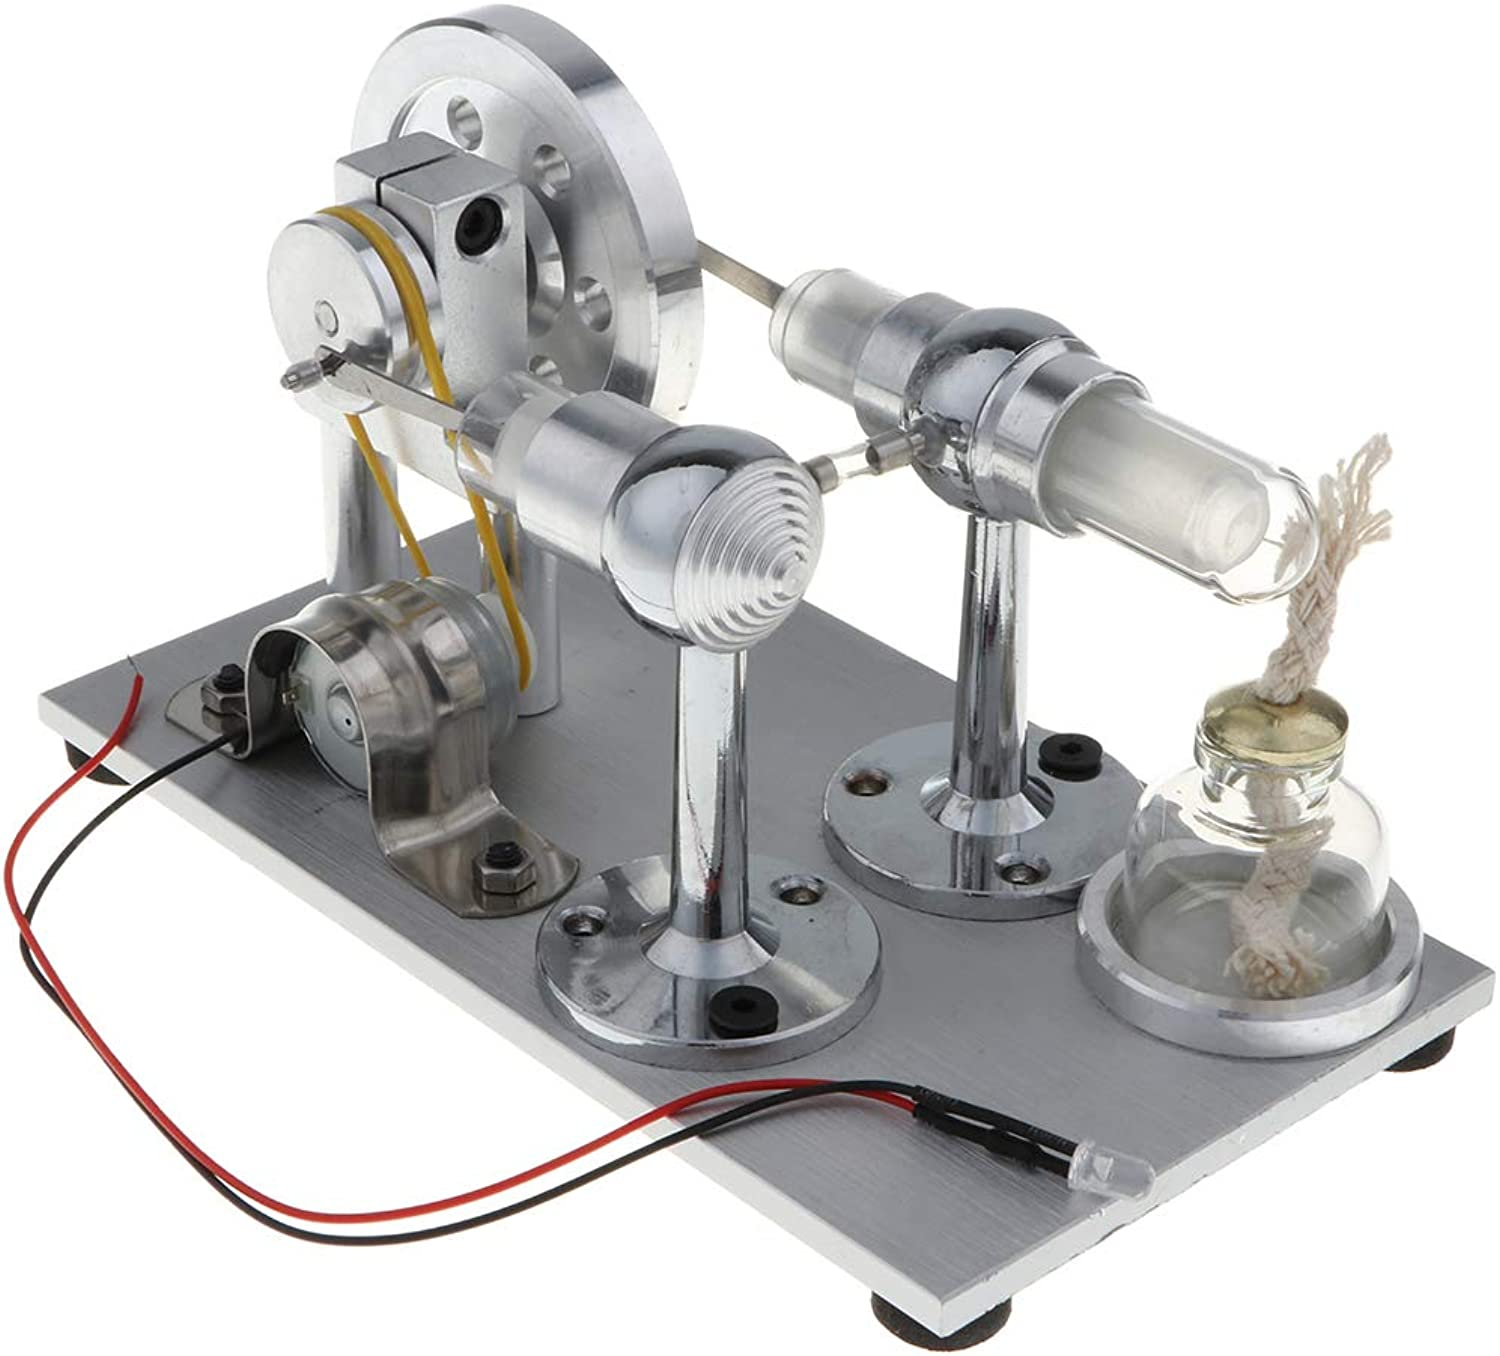 Homyl External Combustion Stirling Engine Model Motor Power Electricity Generator Physical Experiment Kits Educational & Science Toy